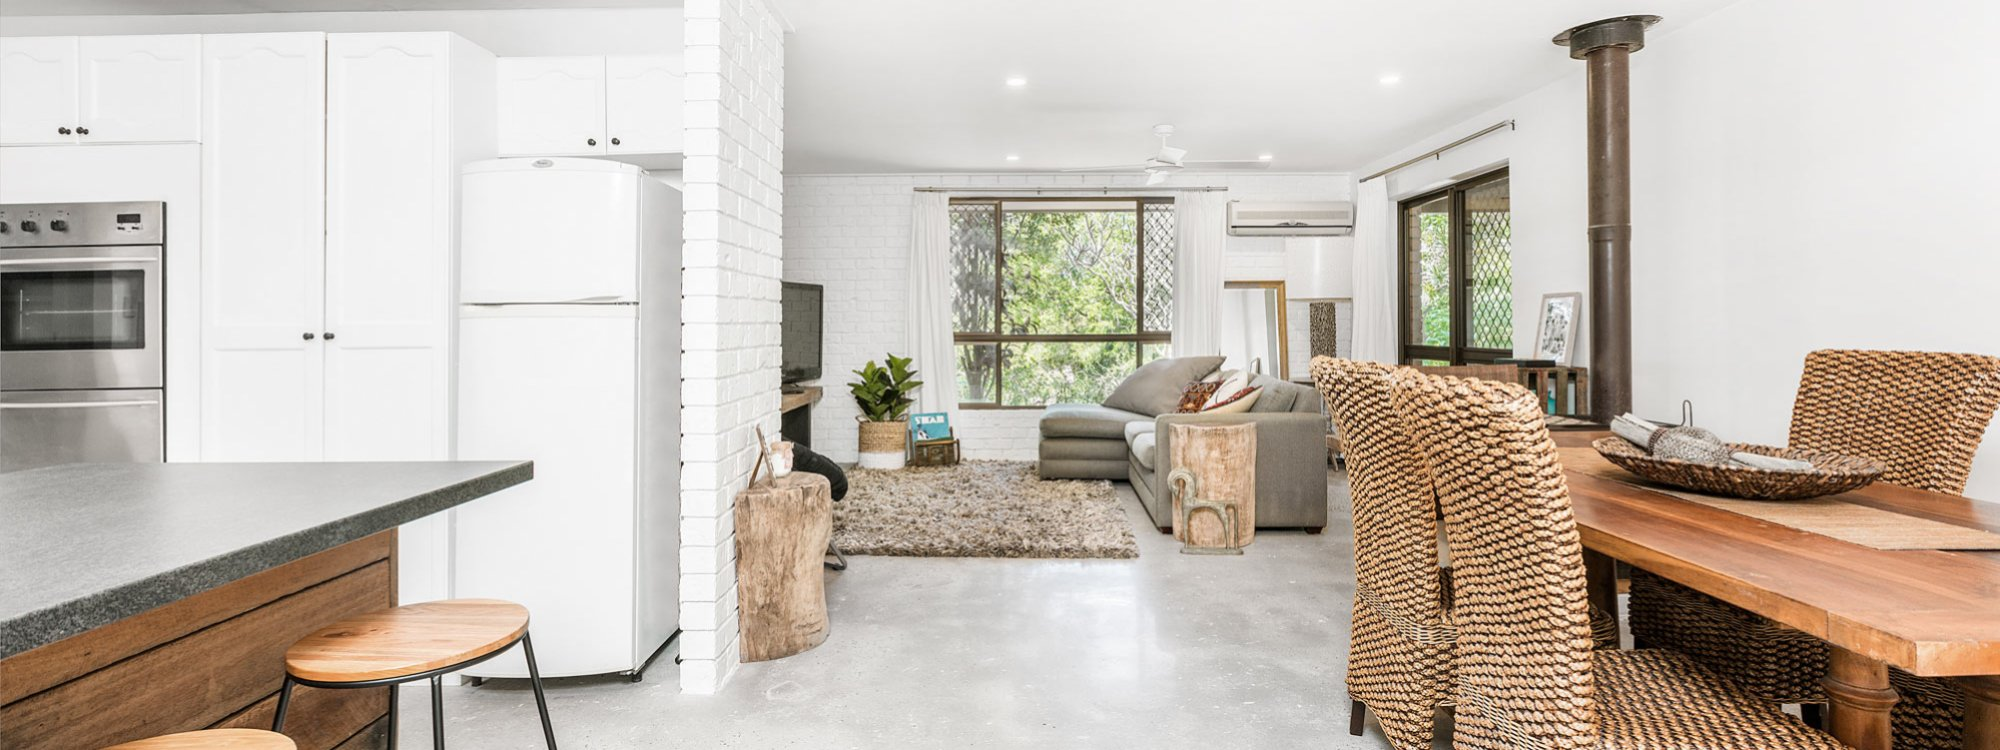 Sea Salt - Byron Bay - Kitchen Looking To Dining And Lounge Room